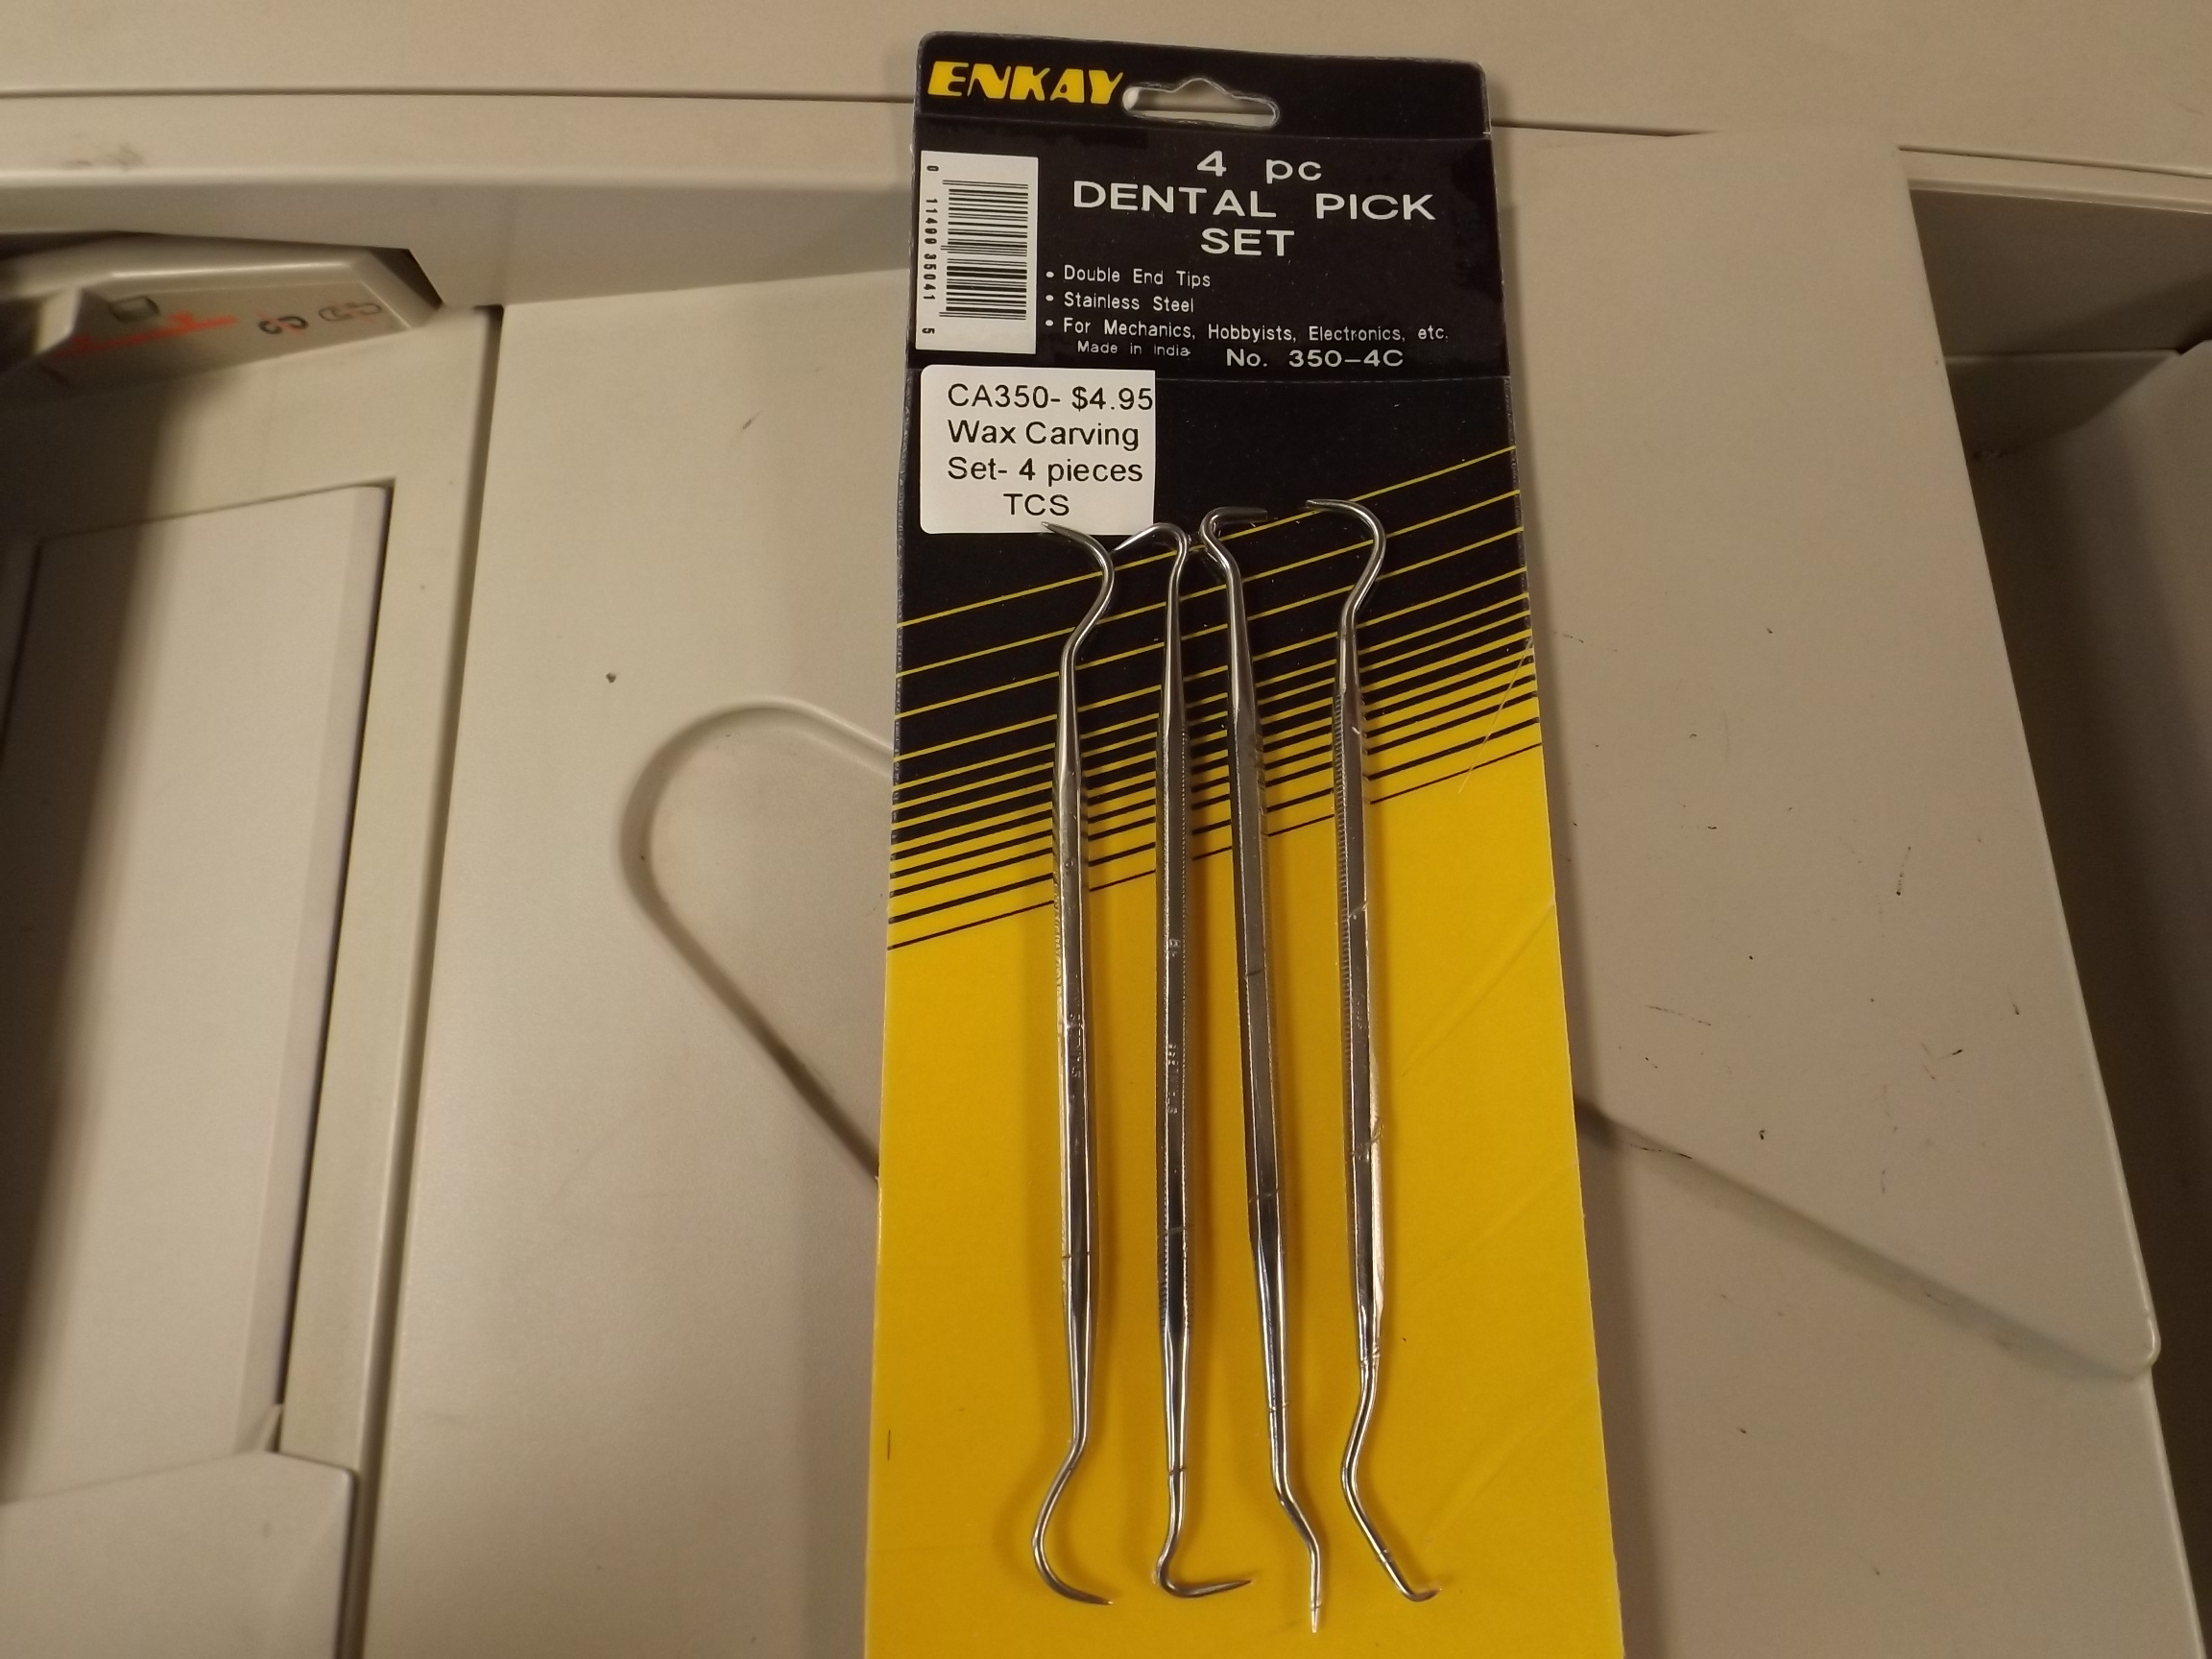 CA350 Wax Carving Set/Dental Pick Set--4pieces- from Enkay